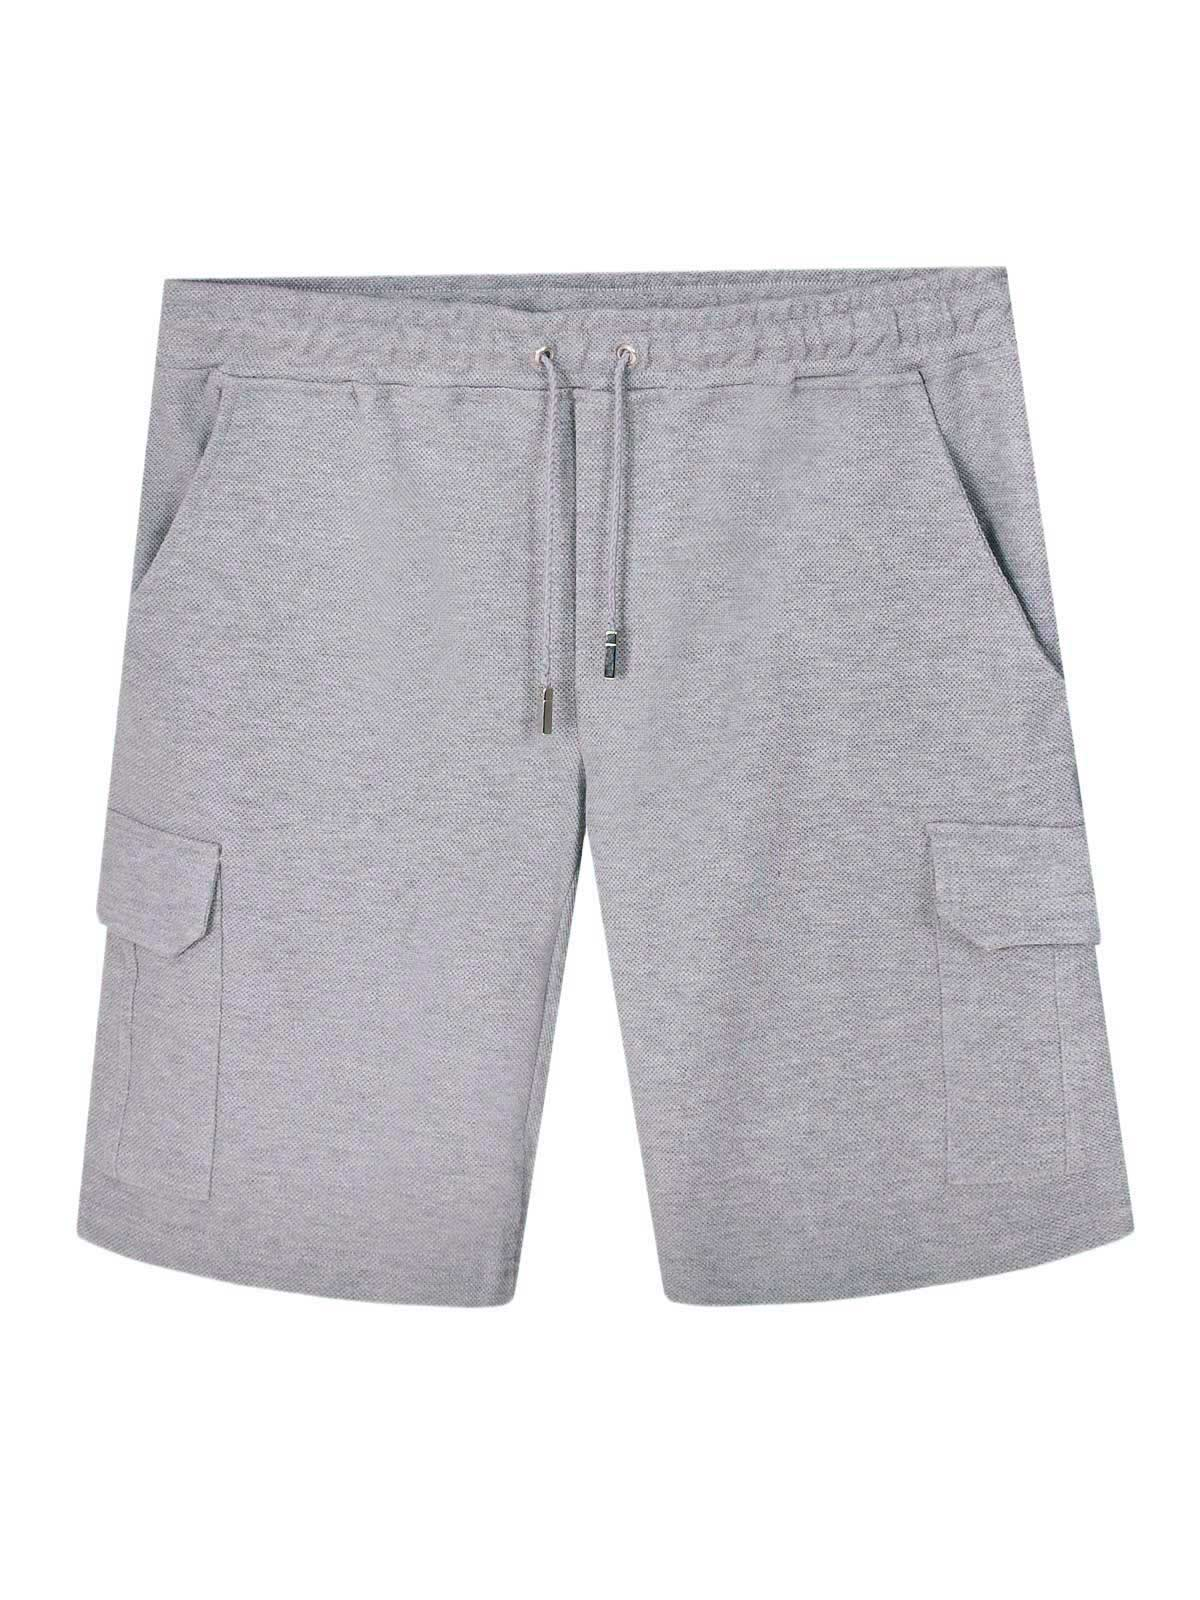 Picture of ELEVENTY | Men's Cotton Shorts